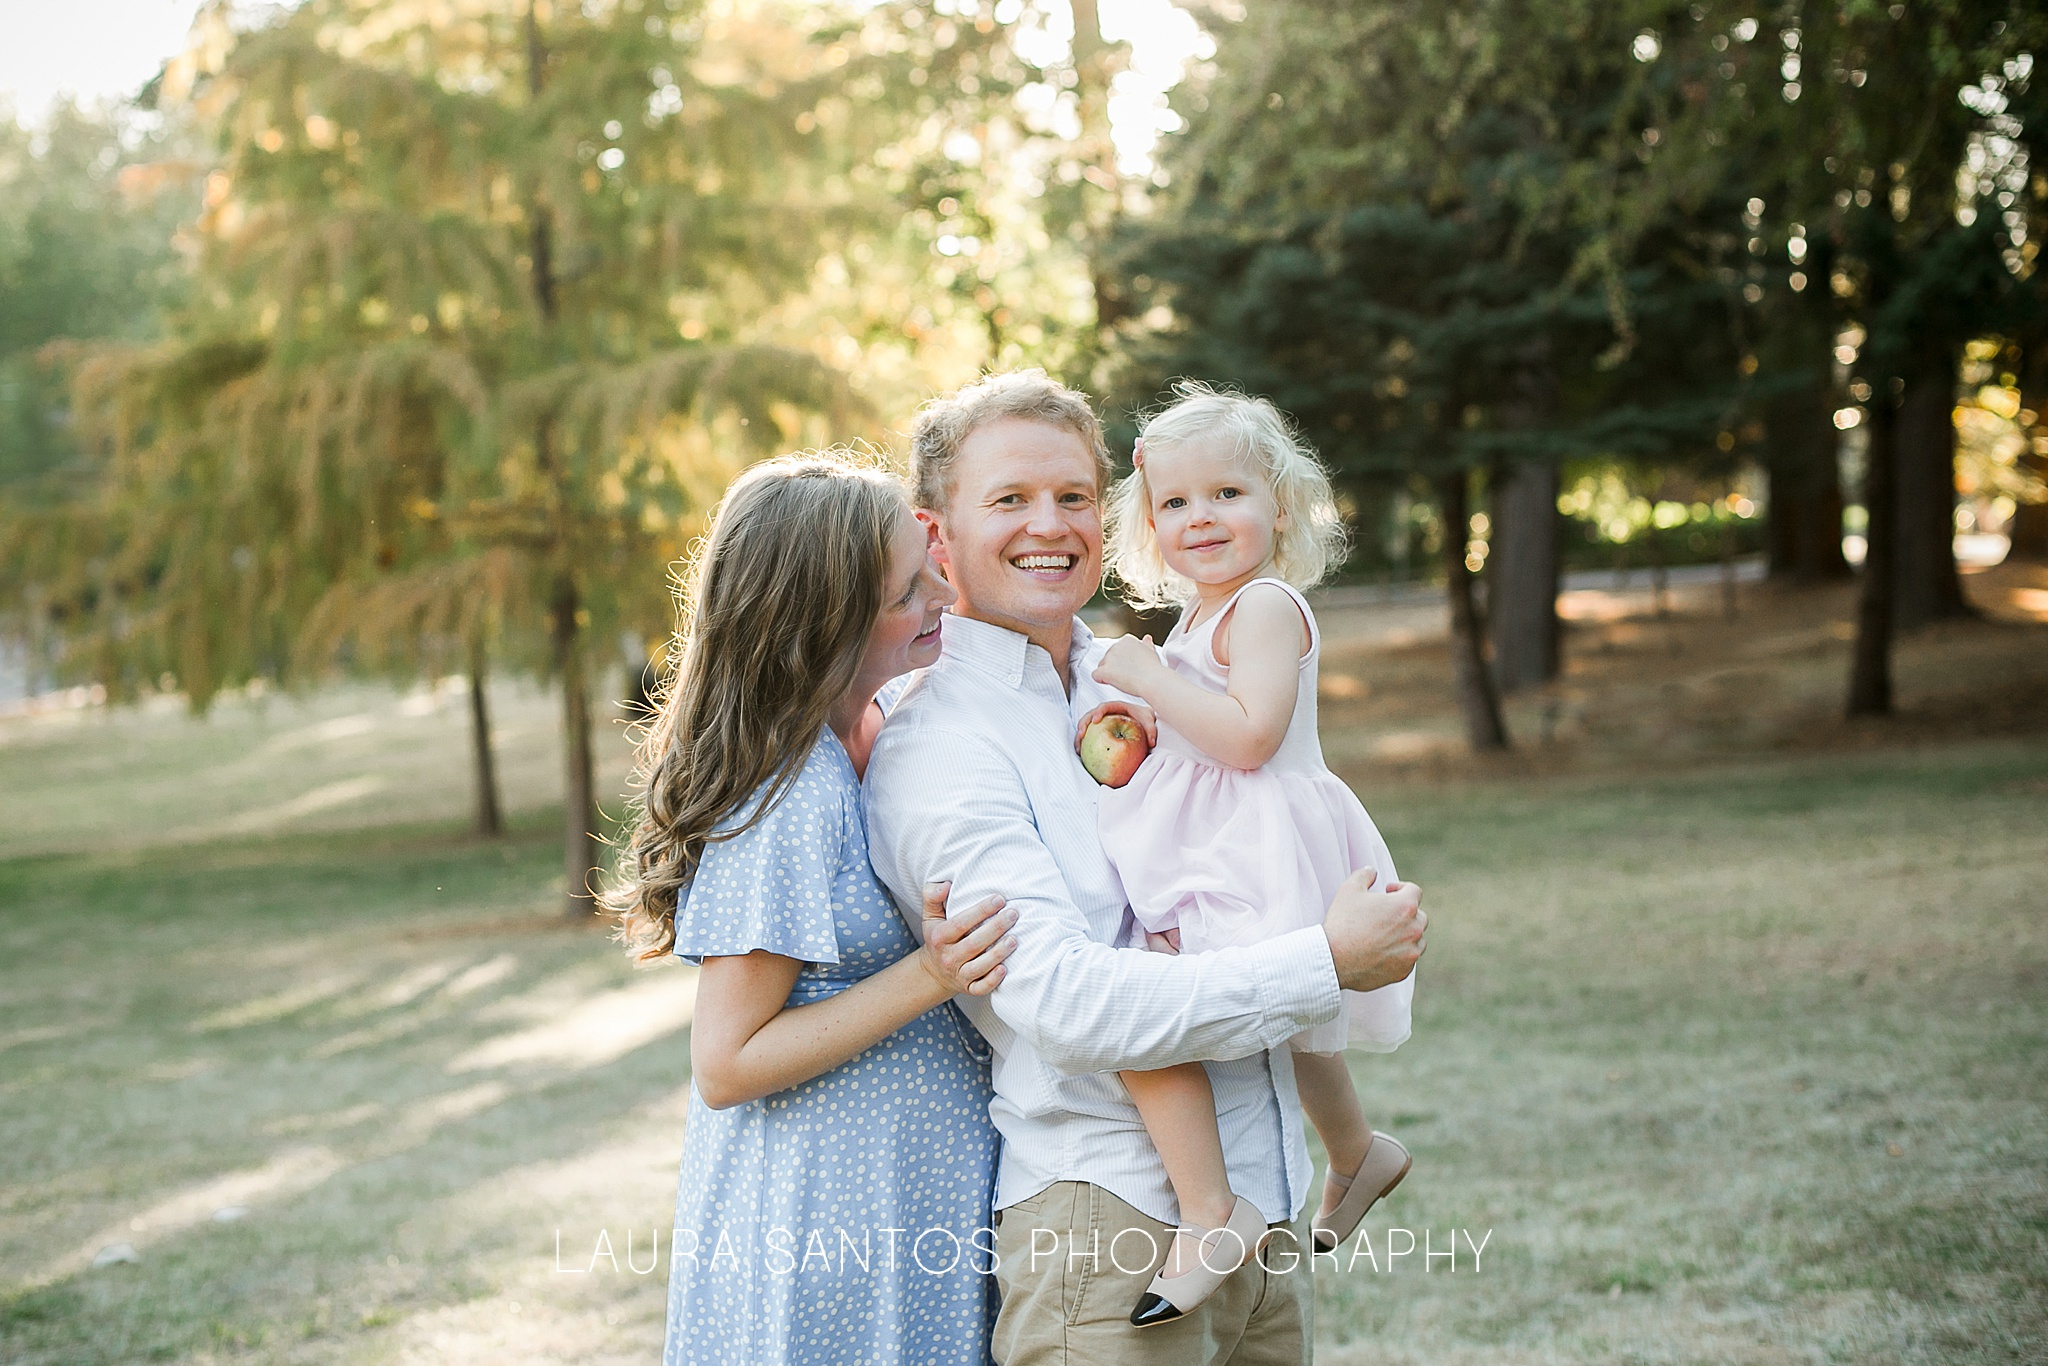 Laura Santos Photography Portland Oregon Family Photographer_0724.jpg